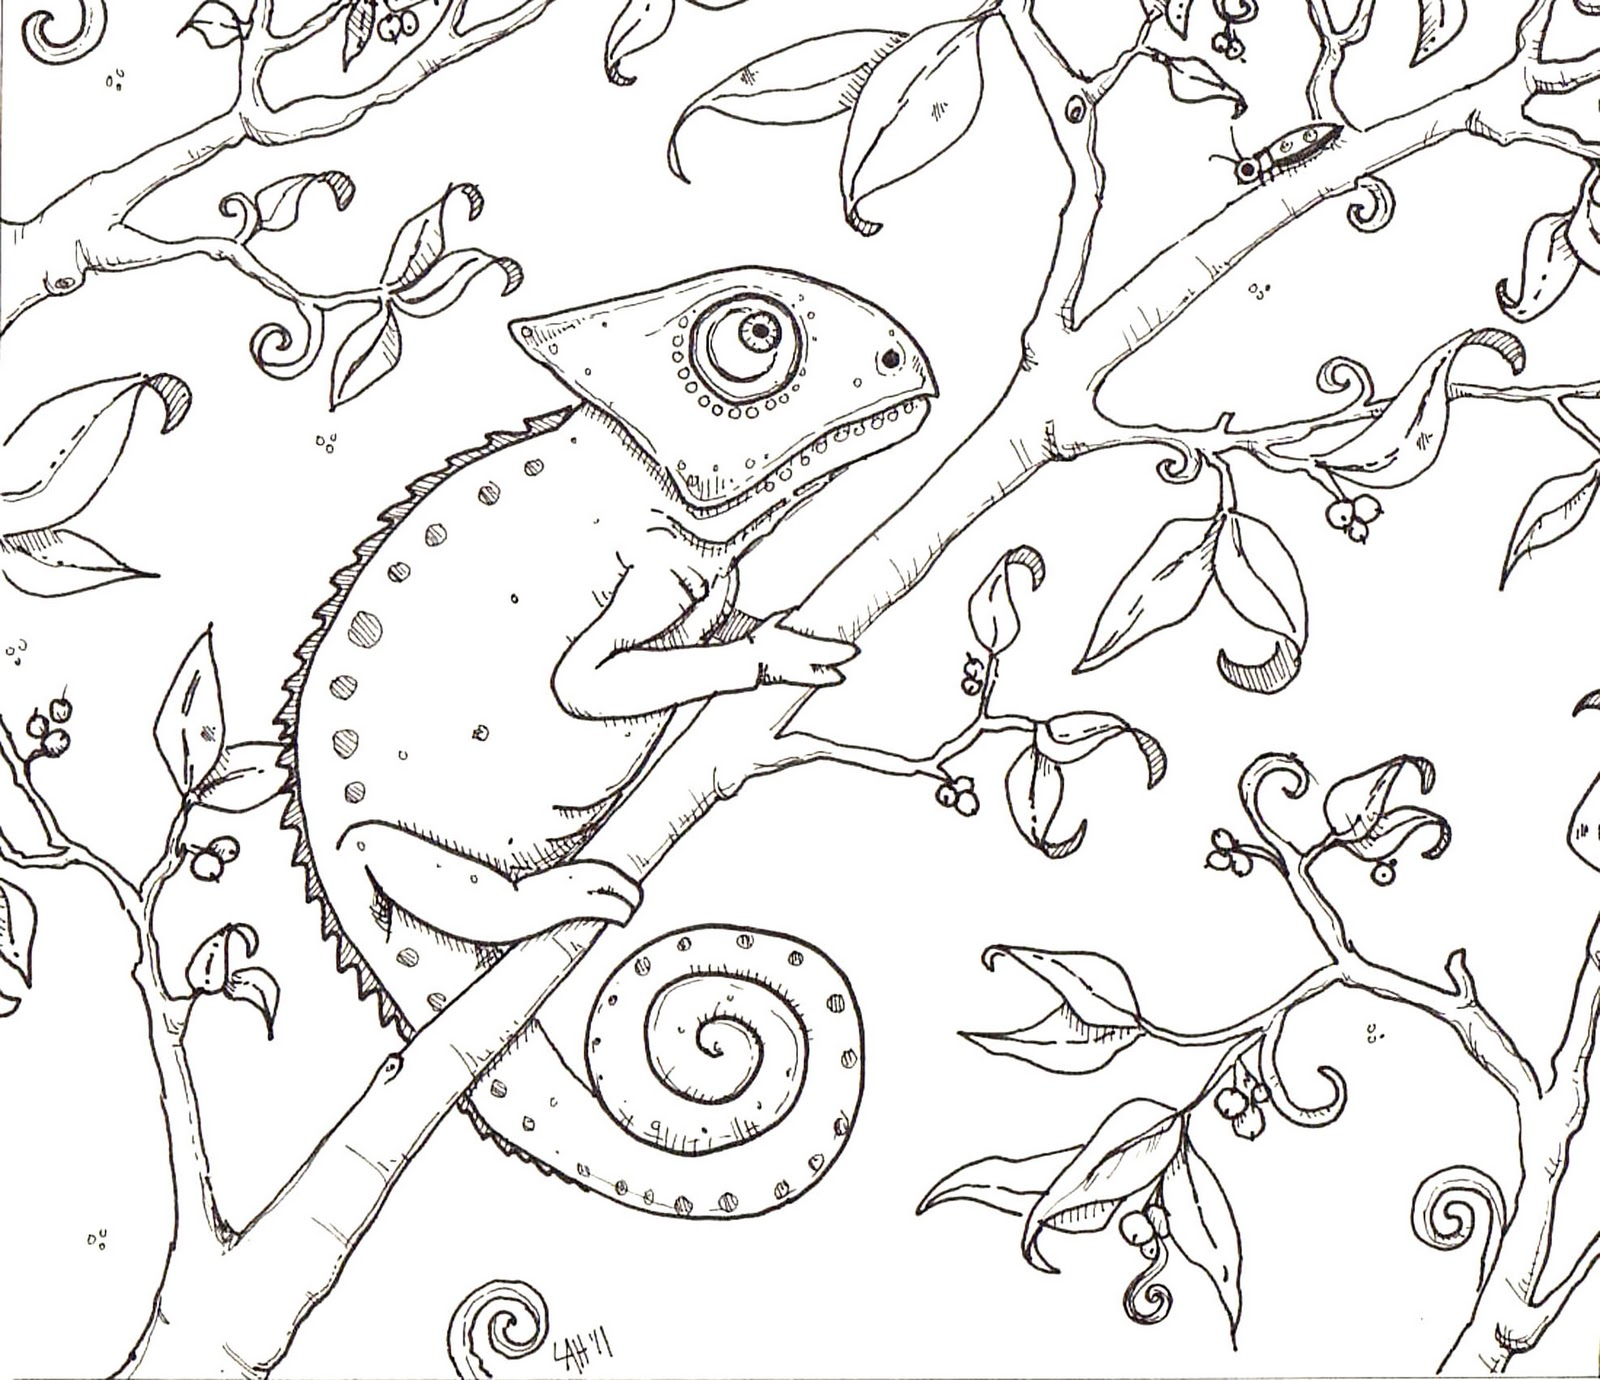 chameleon coloring pages - photo#9